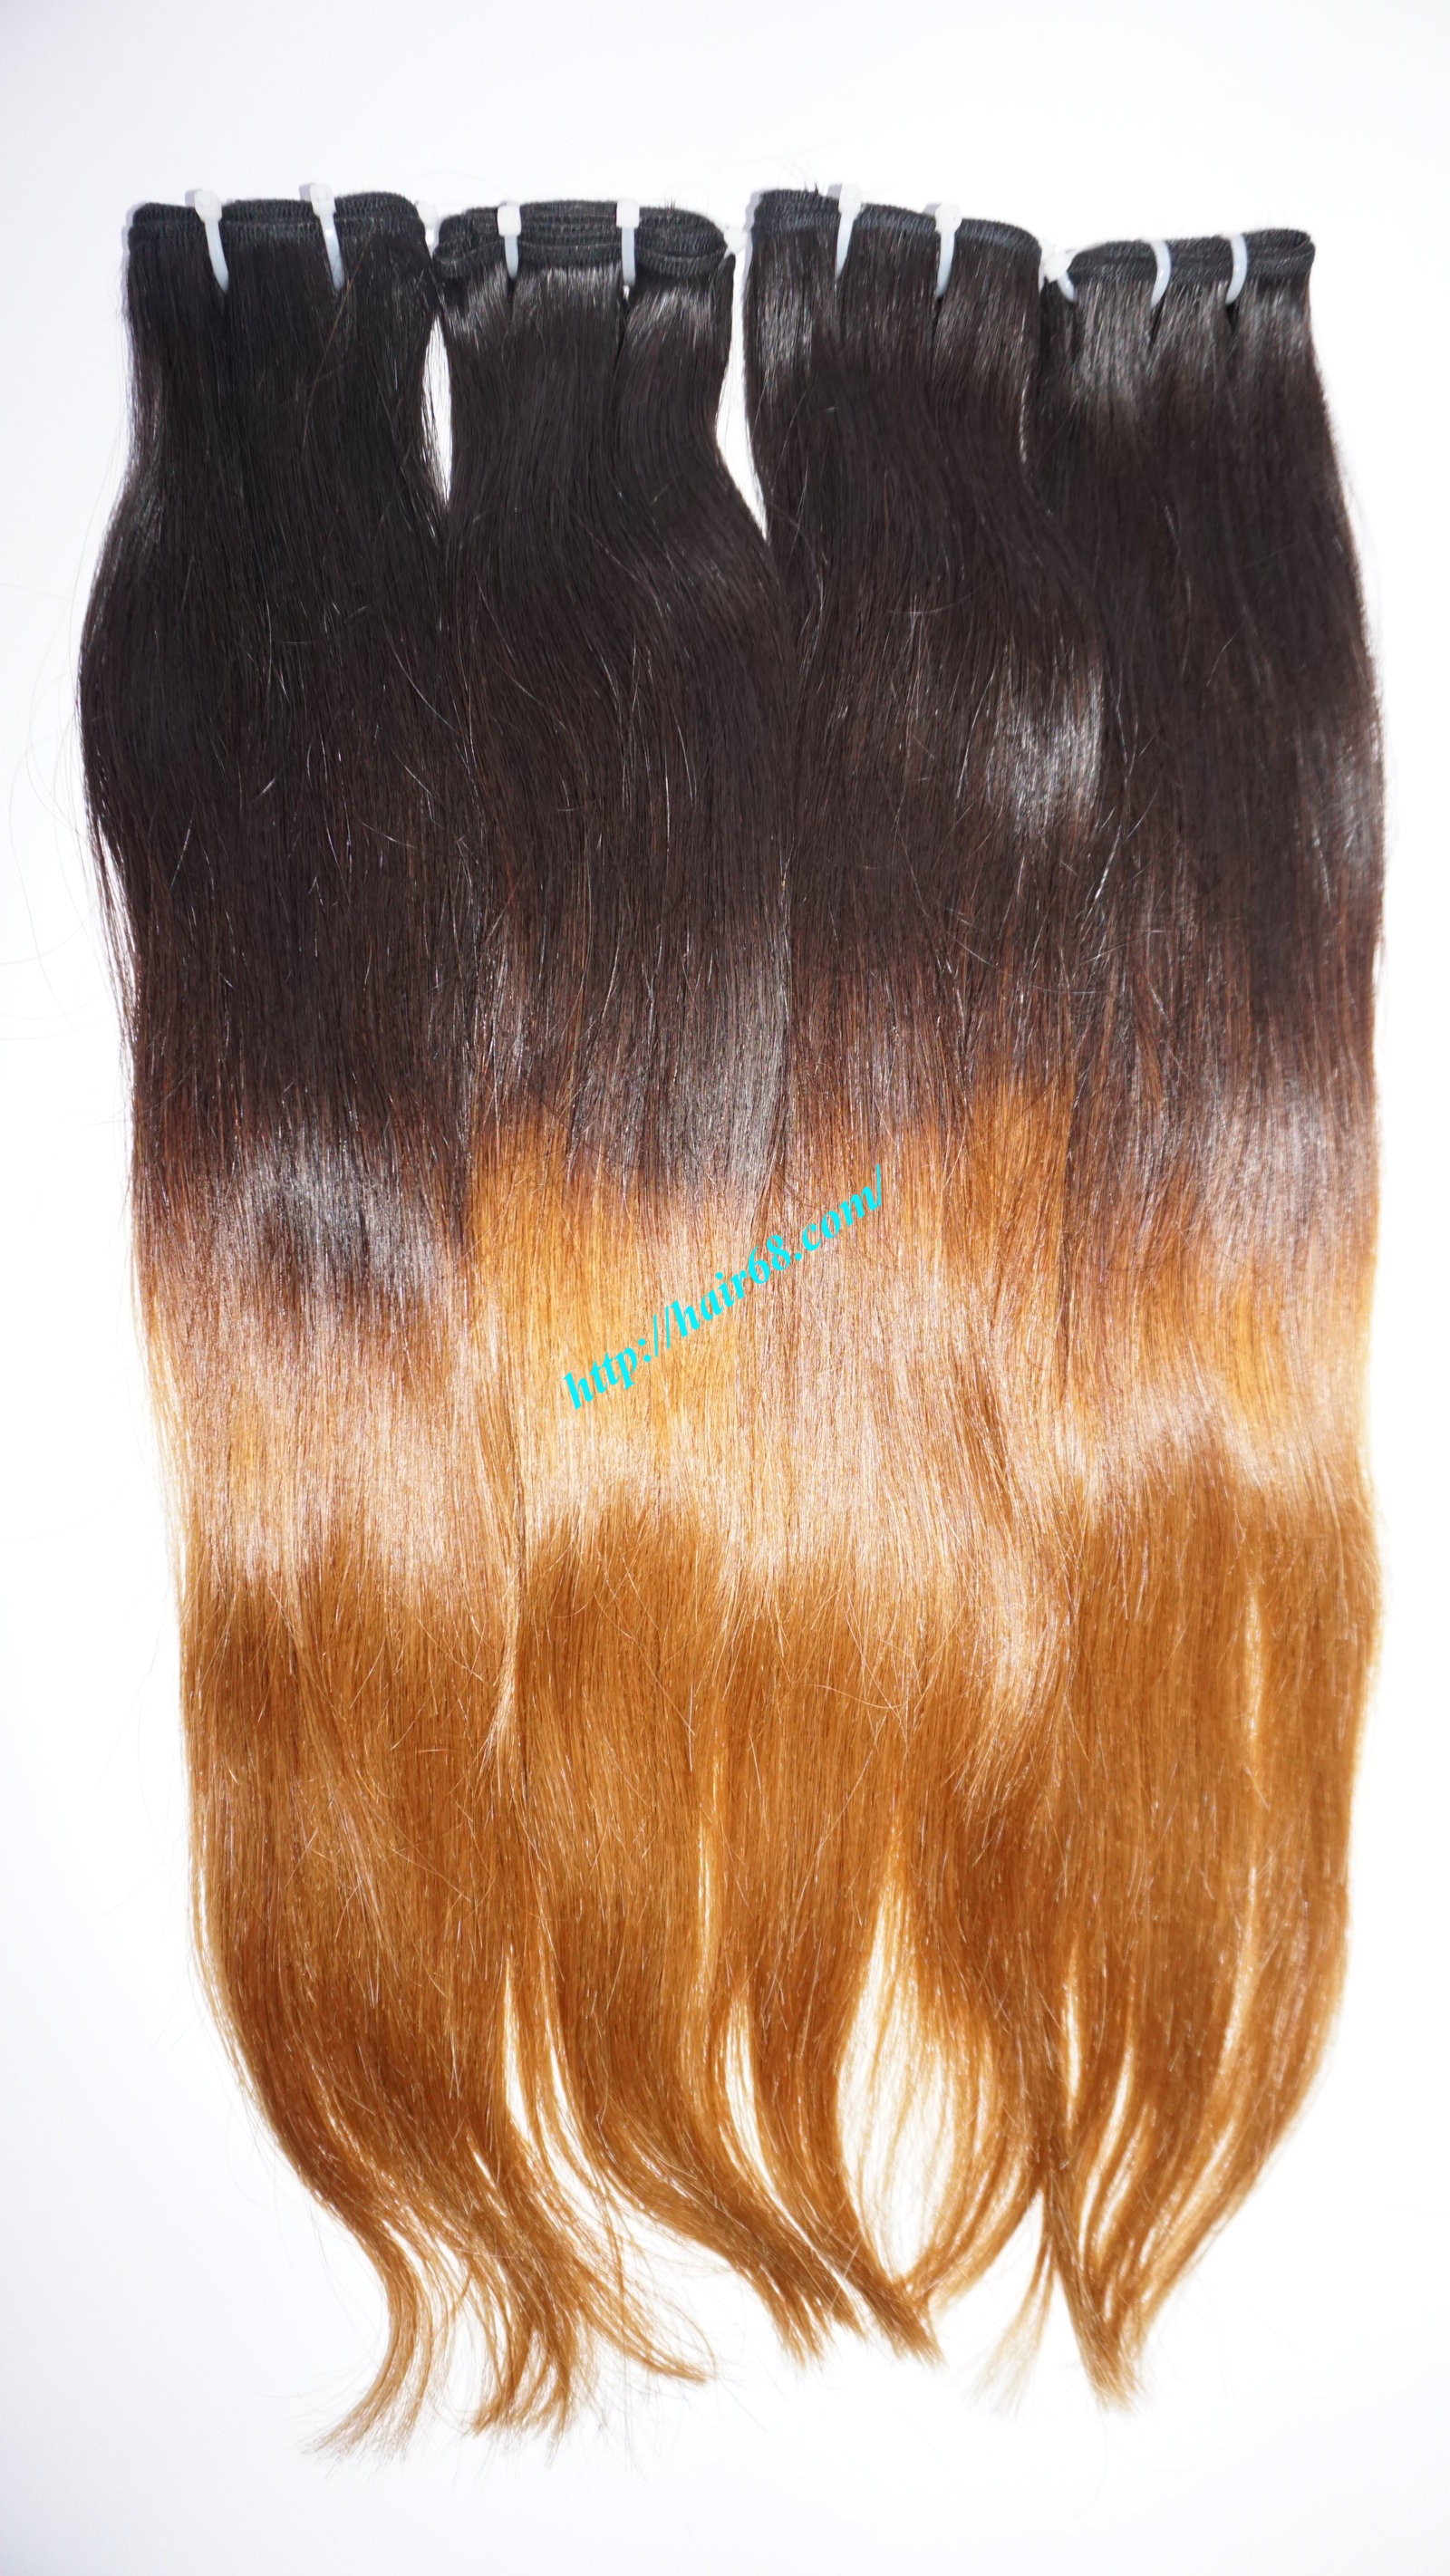 16 inch ombre hair extension vietnam hair 2